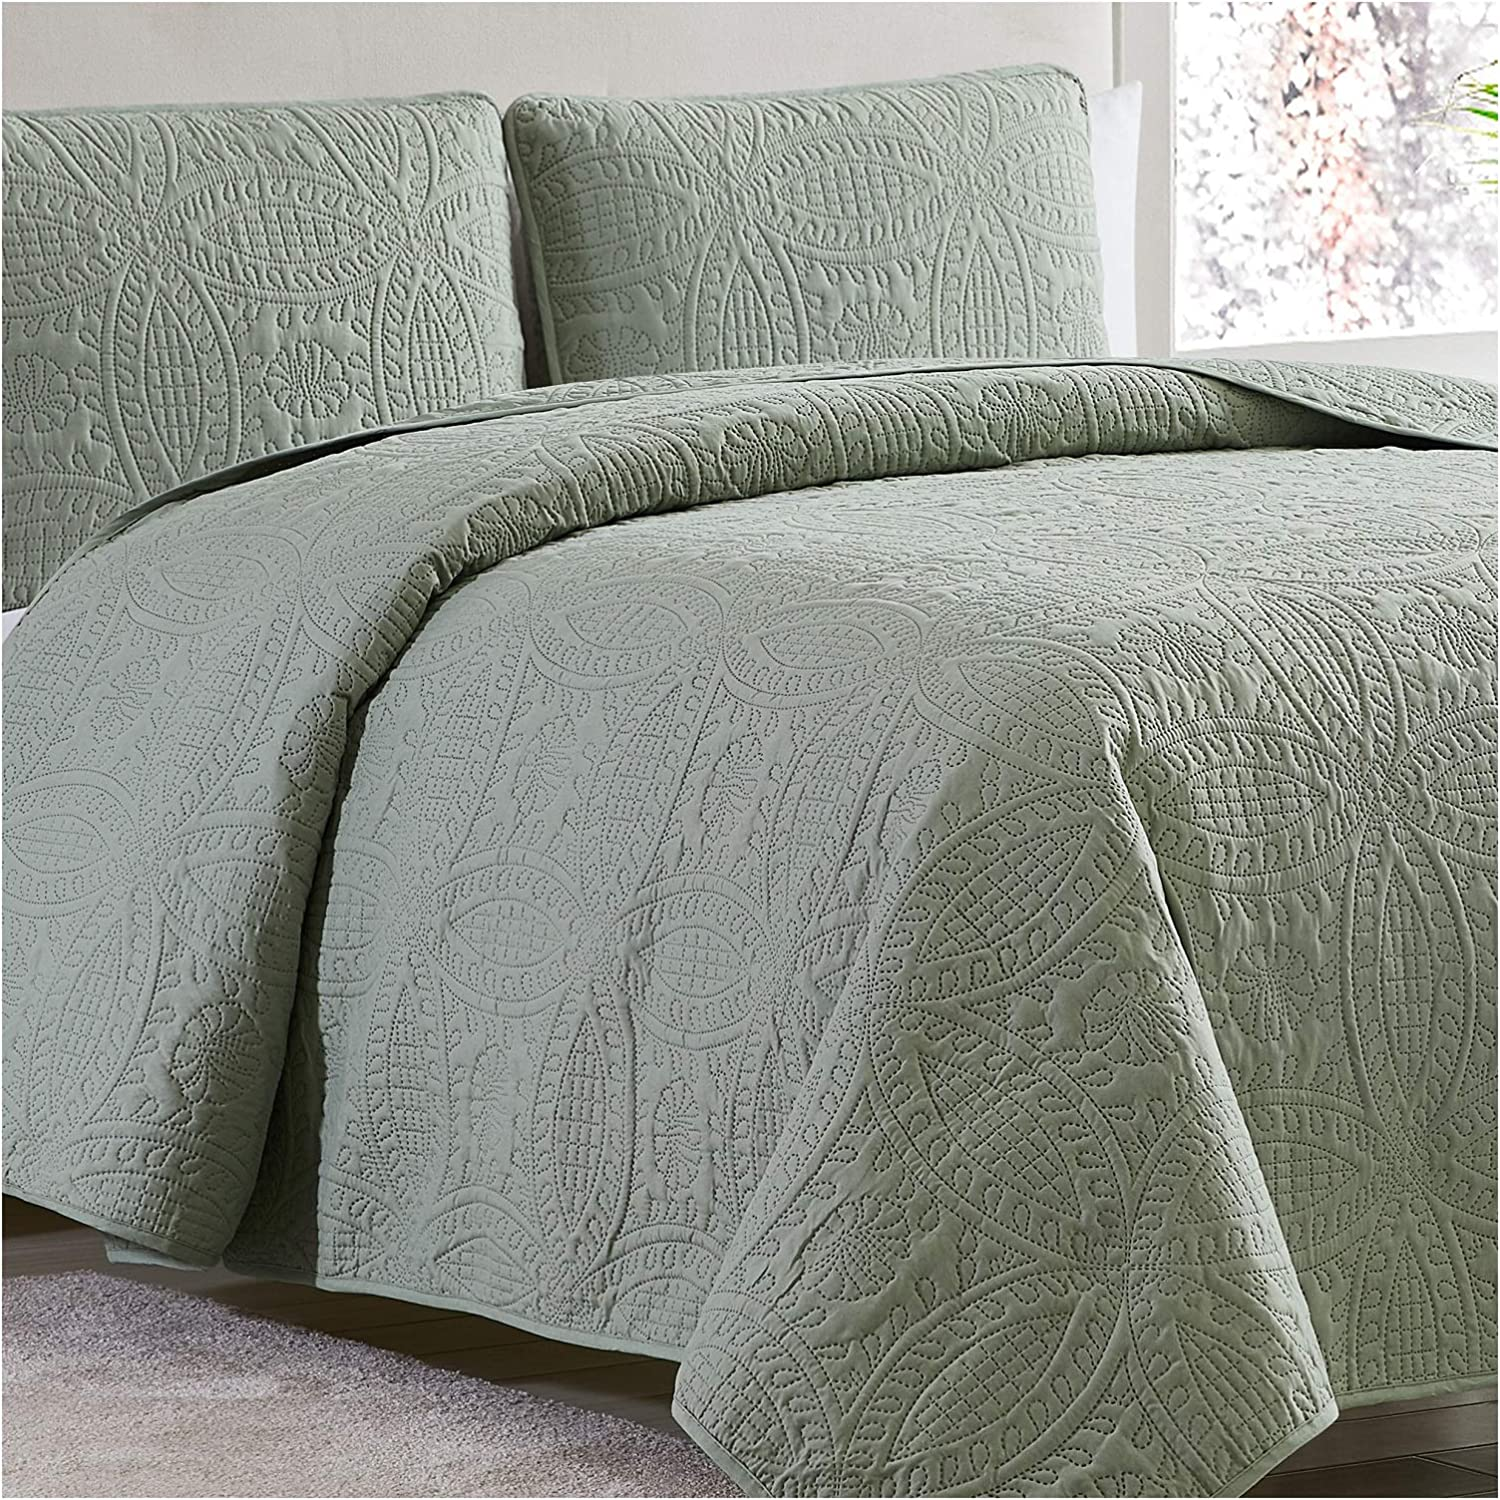 Mellanni Bedspread Coverlet Set Olive-Green - Comforter Bedding Cover - Oversized 3-Piece Quilt Set (Full/Queen, Olive Green)